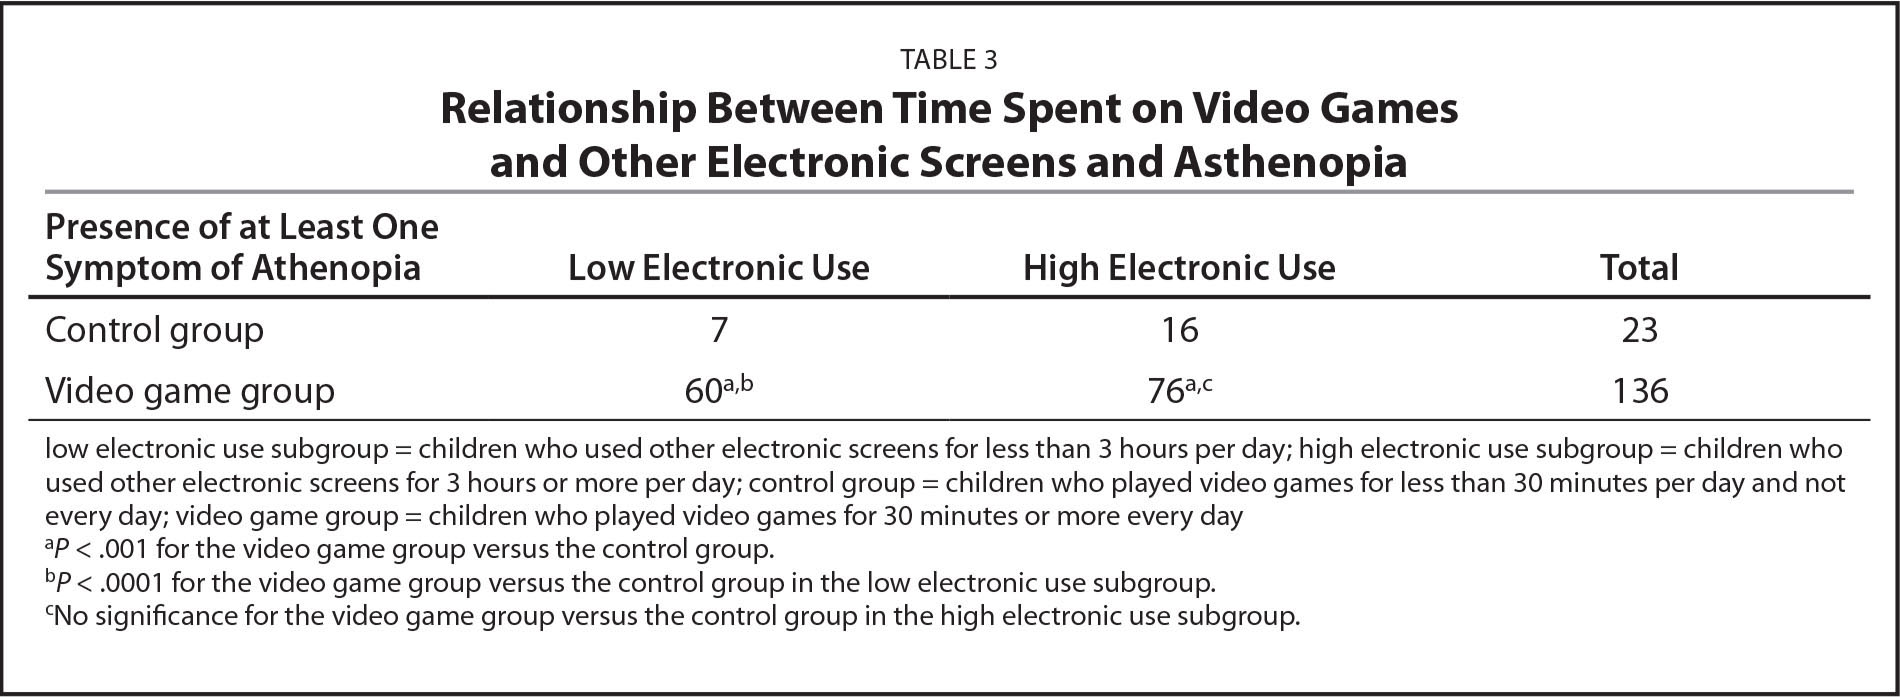 Relationship Between Time Spent on Video Games and Other Electronic Screens and Asthenopia